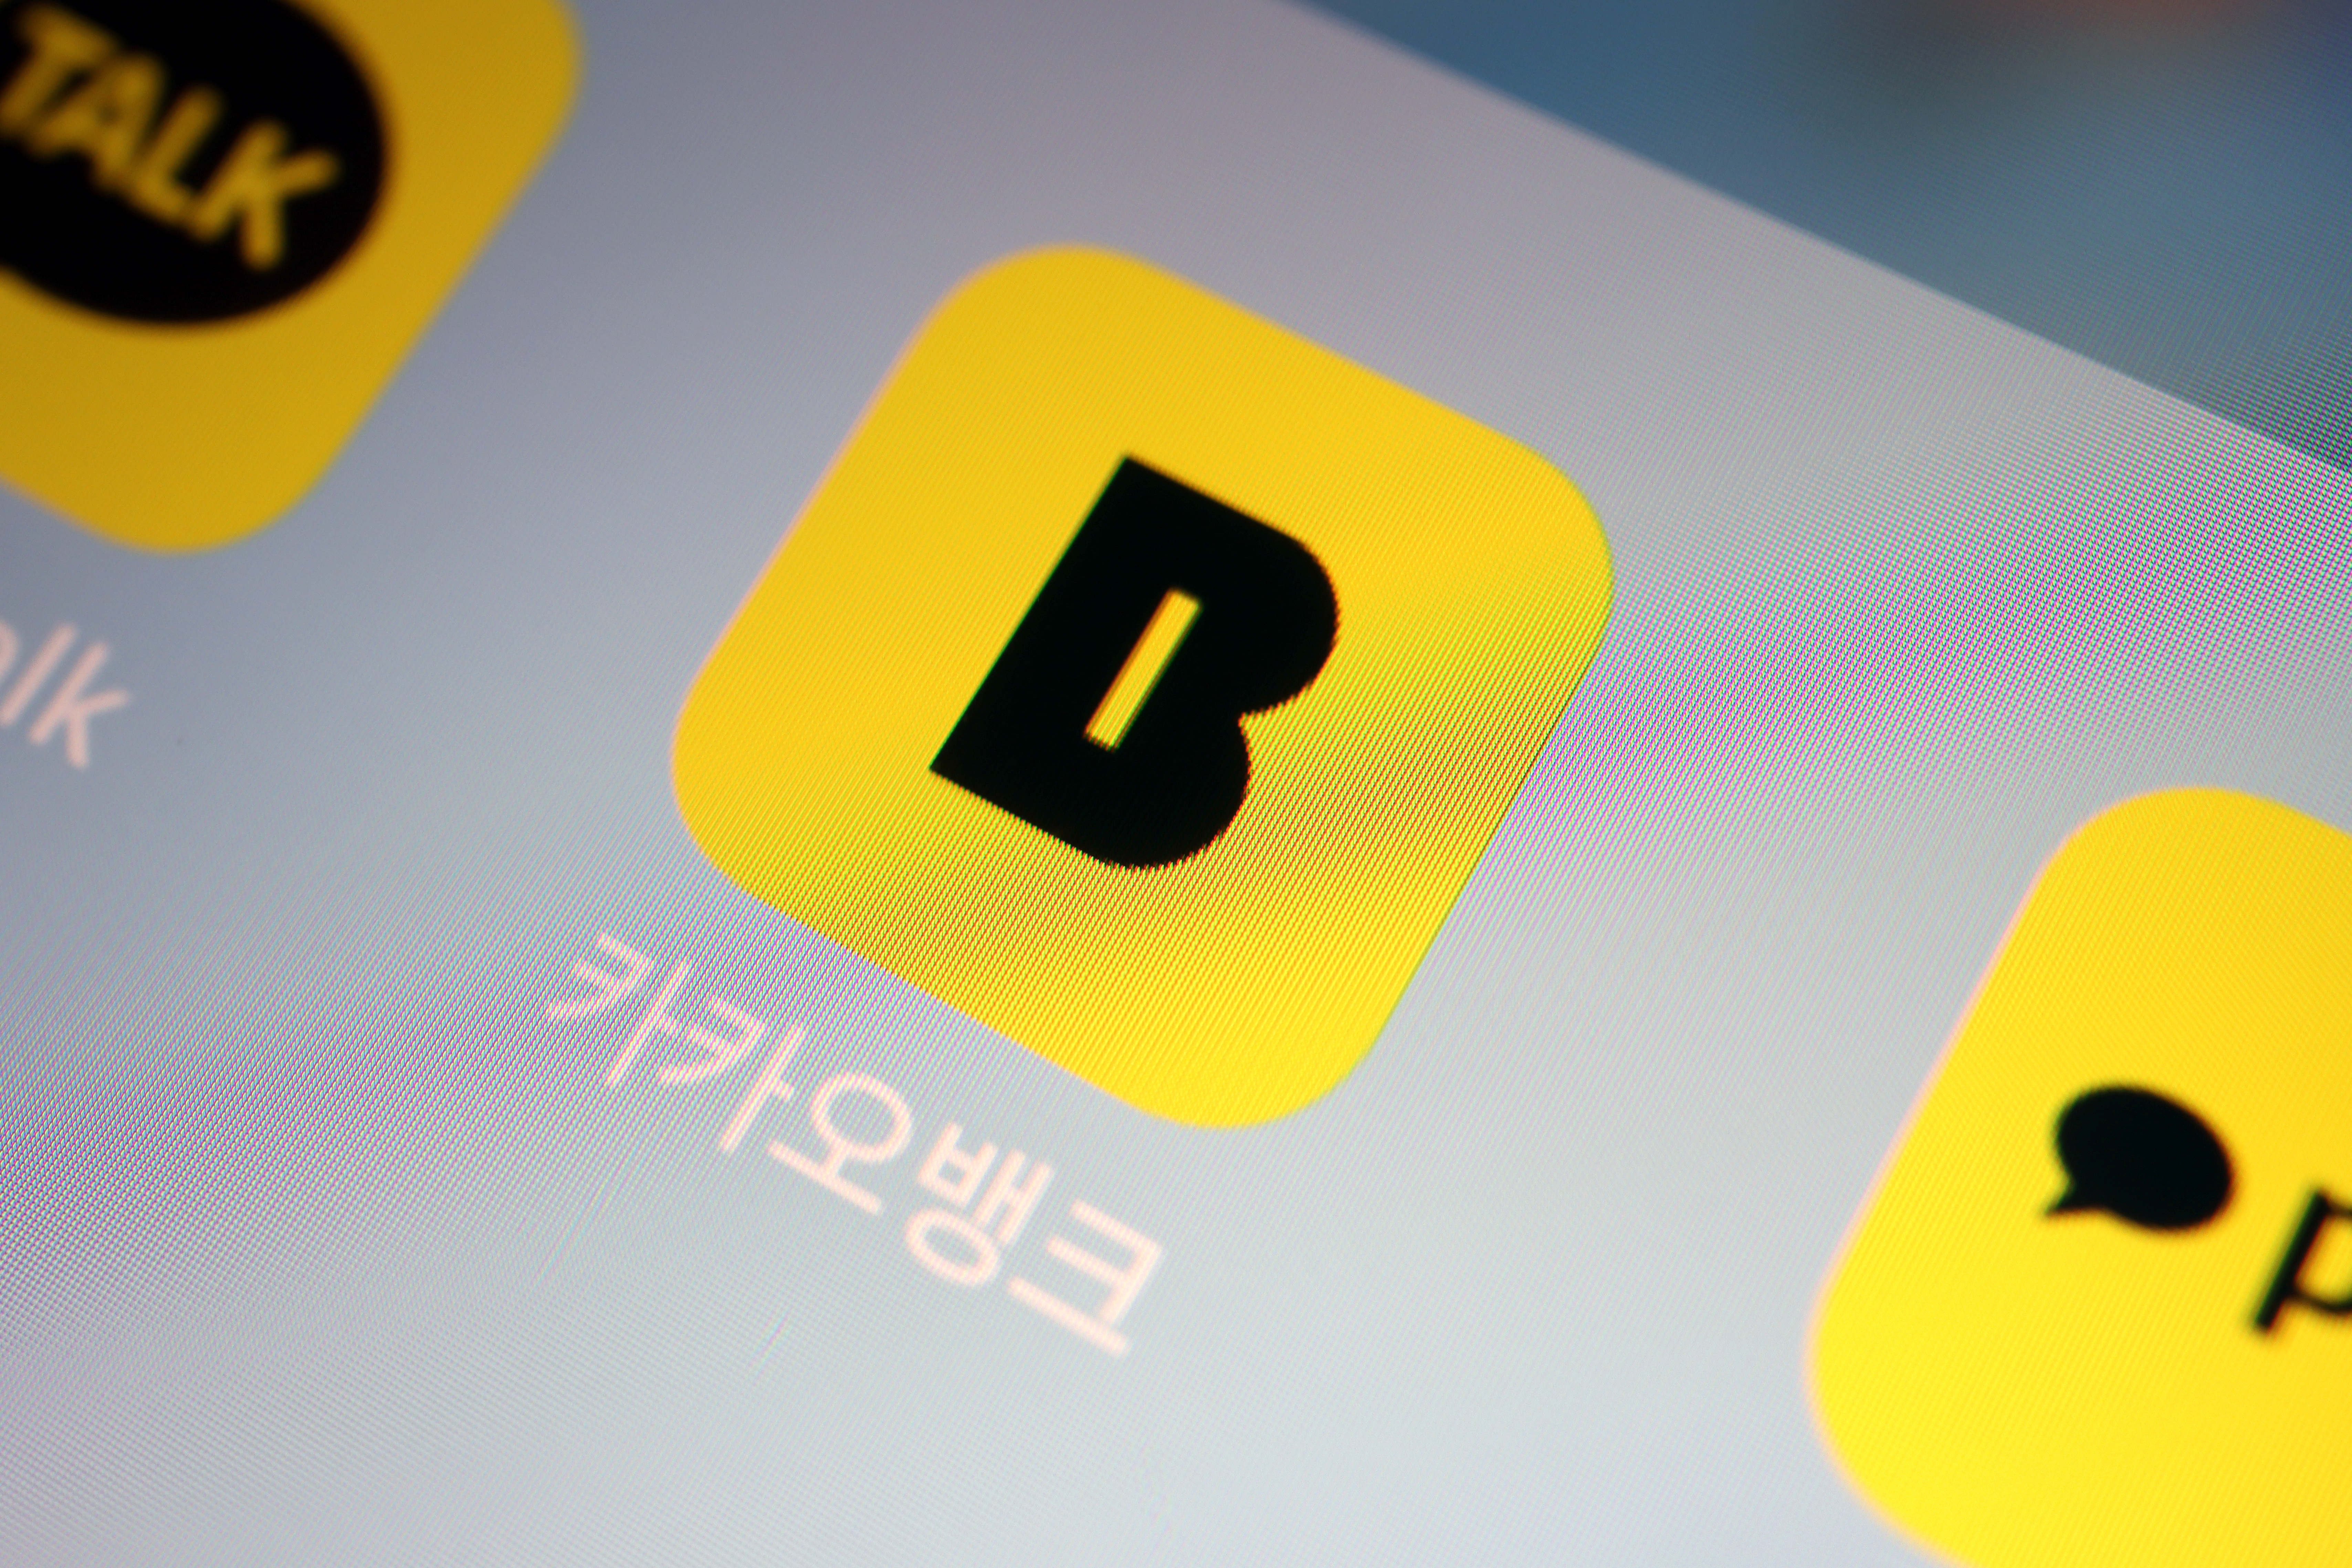 The app of South Korean digital lender Kakao Bank is seen on a mobile phone in this illustration picture taken August 6, 2021. REUTERS/Florence Lo/Illustration